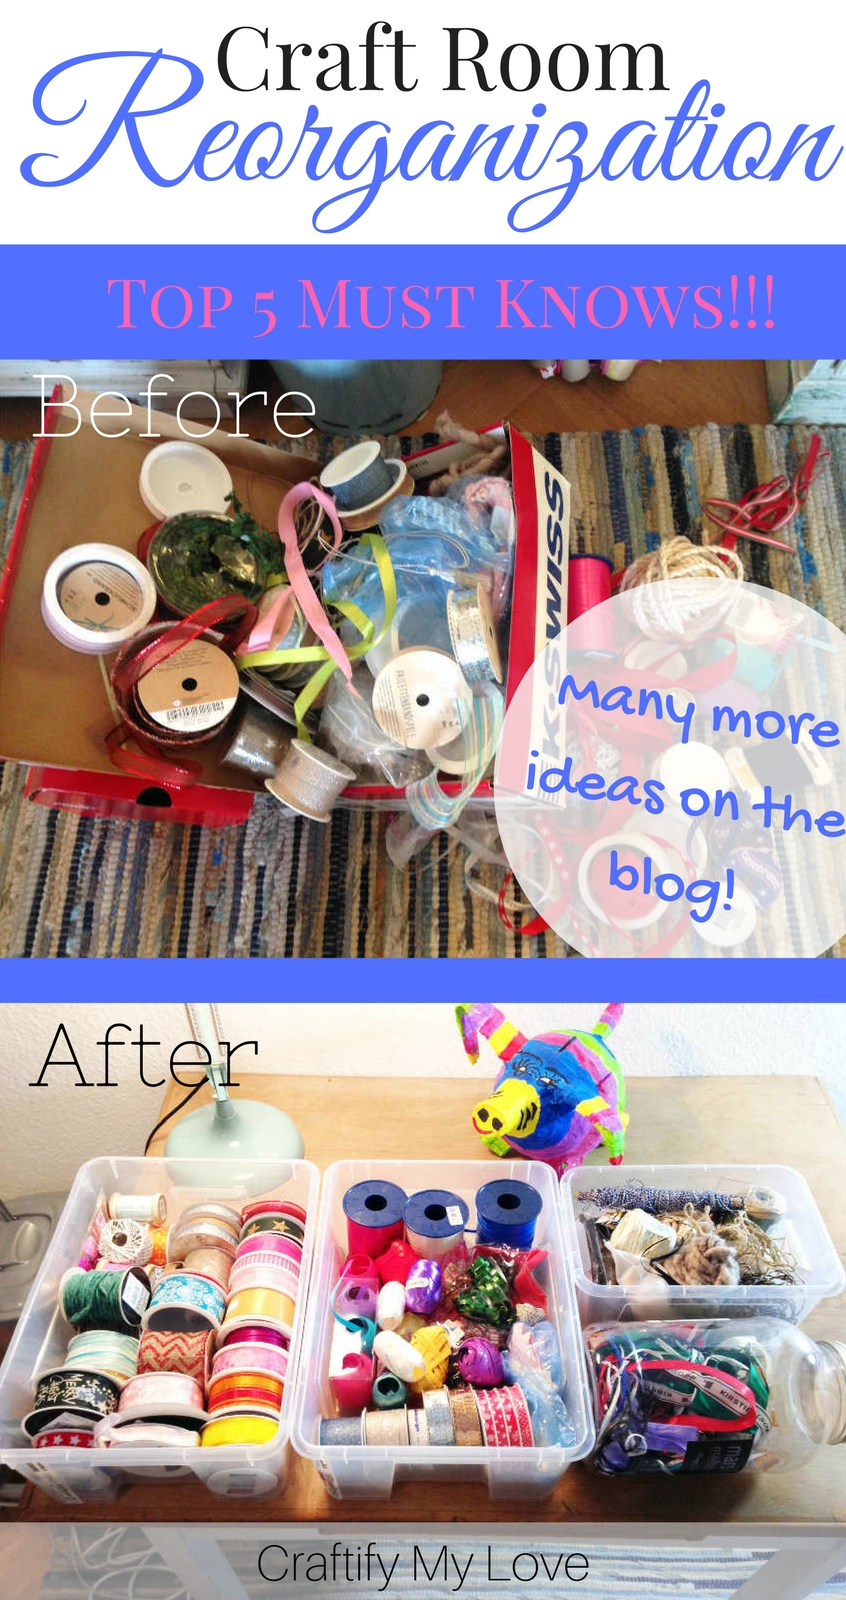 Top 5 Craft Room Organization Tipps you need to know! Today I challenge you to reorganize your Craft Room and I guarantee you won't want to leave your creative space ever again!   #craftroomchallenge #craftroomreorganization #craftroomorganization #craftroommakeover #craftroomideas #organizationhacks